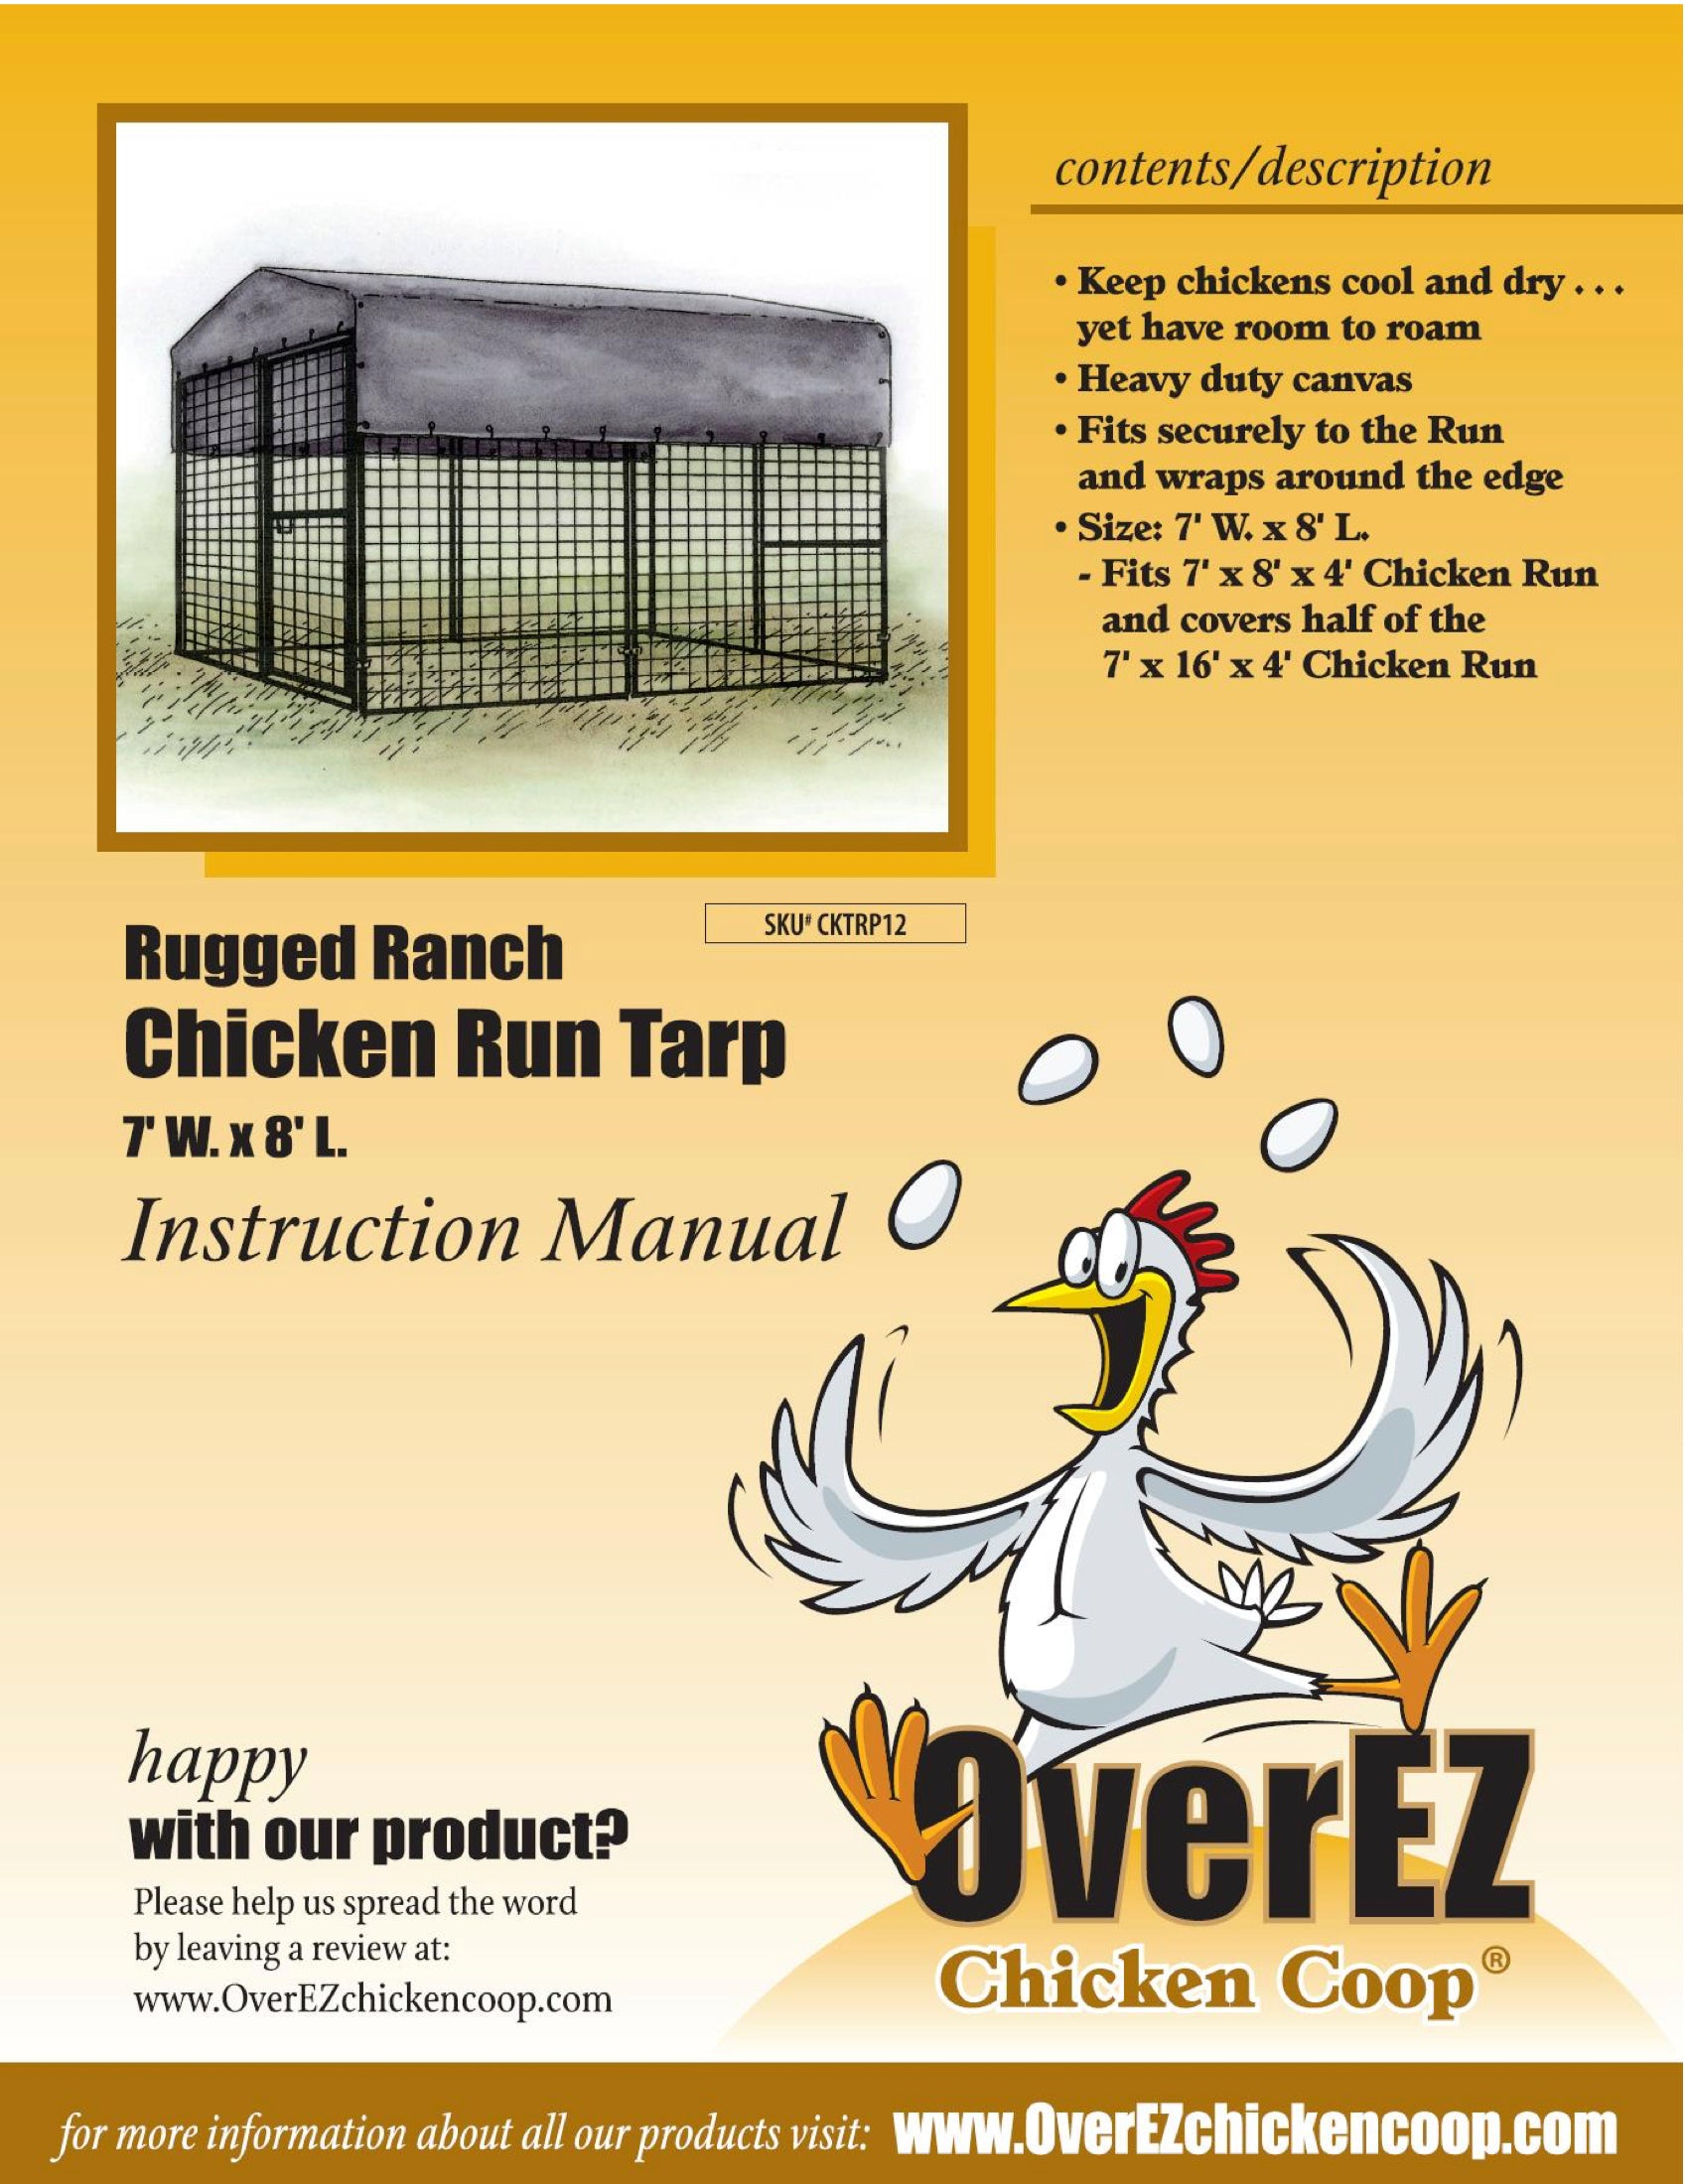 Rugged Ranch Chicken Run Tarp 7x8 Spec Sheet